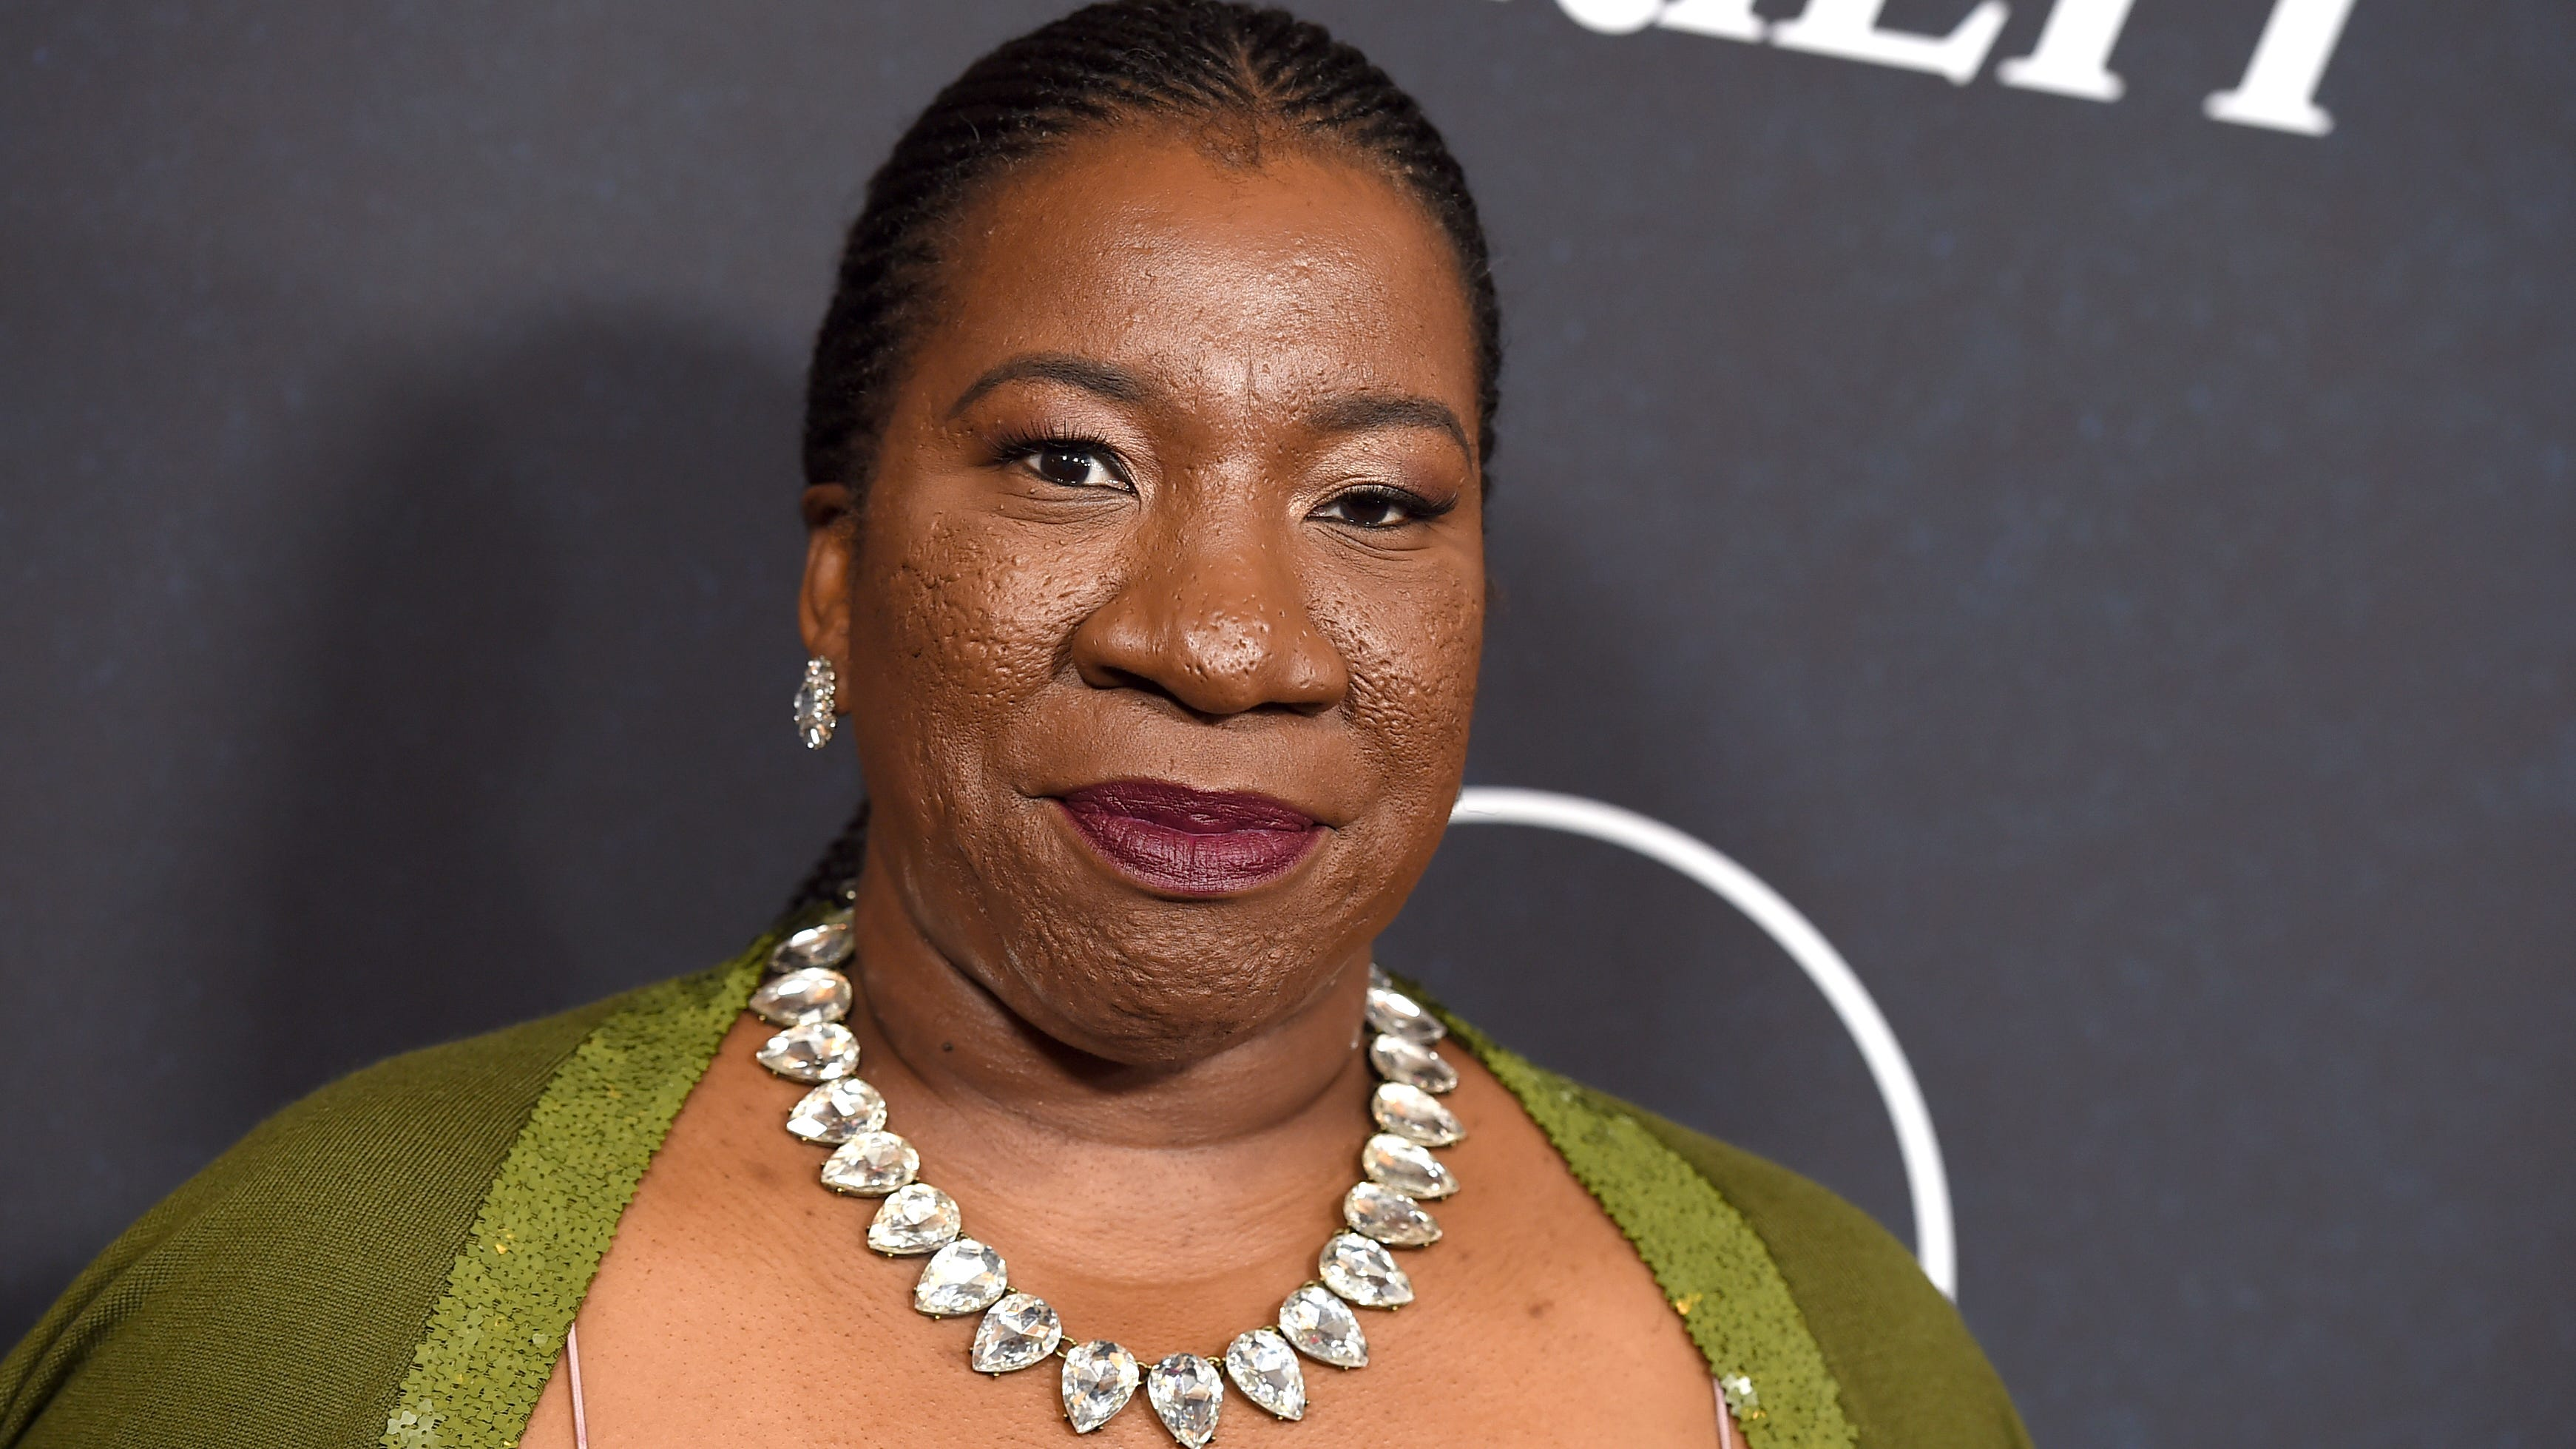 Tarana Burke arrives at Variety's Power of Women event on Oct. 12, 2018, at the Beverly Wilshire hotel in Beverly Hills, Calif.